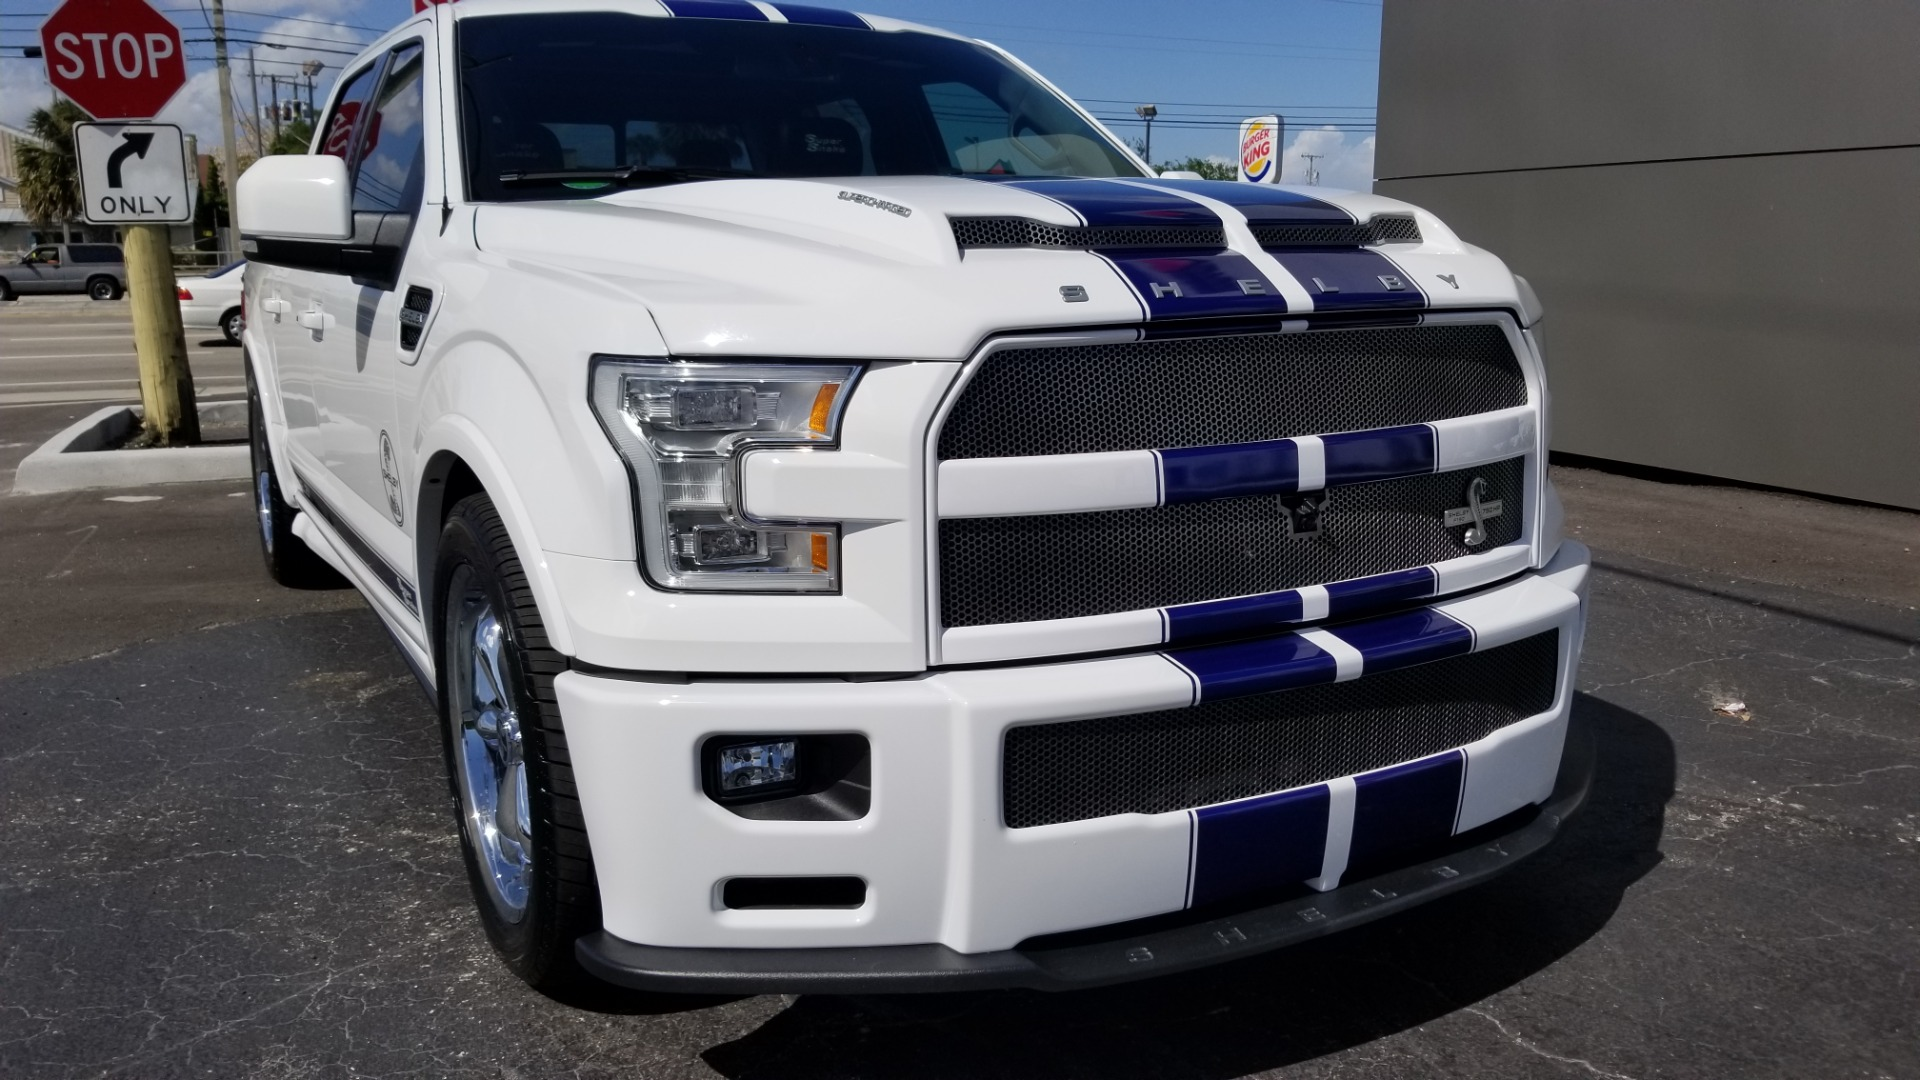 Shelby F150 For Sale >> Used 2017 Ford F-150 Shelby Super Snake For Sale (Special ...